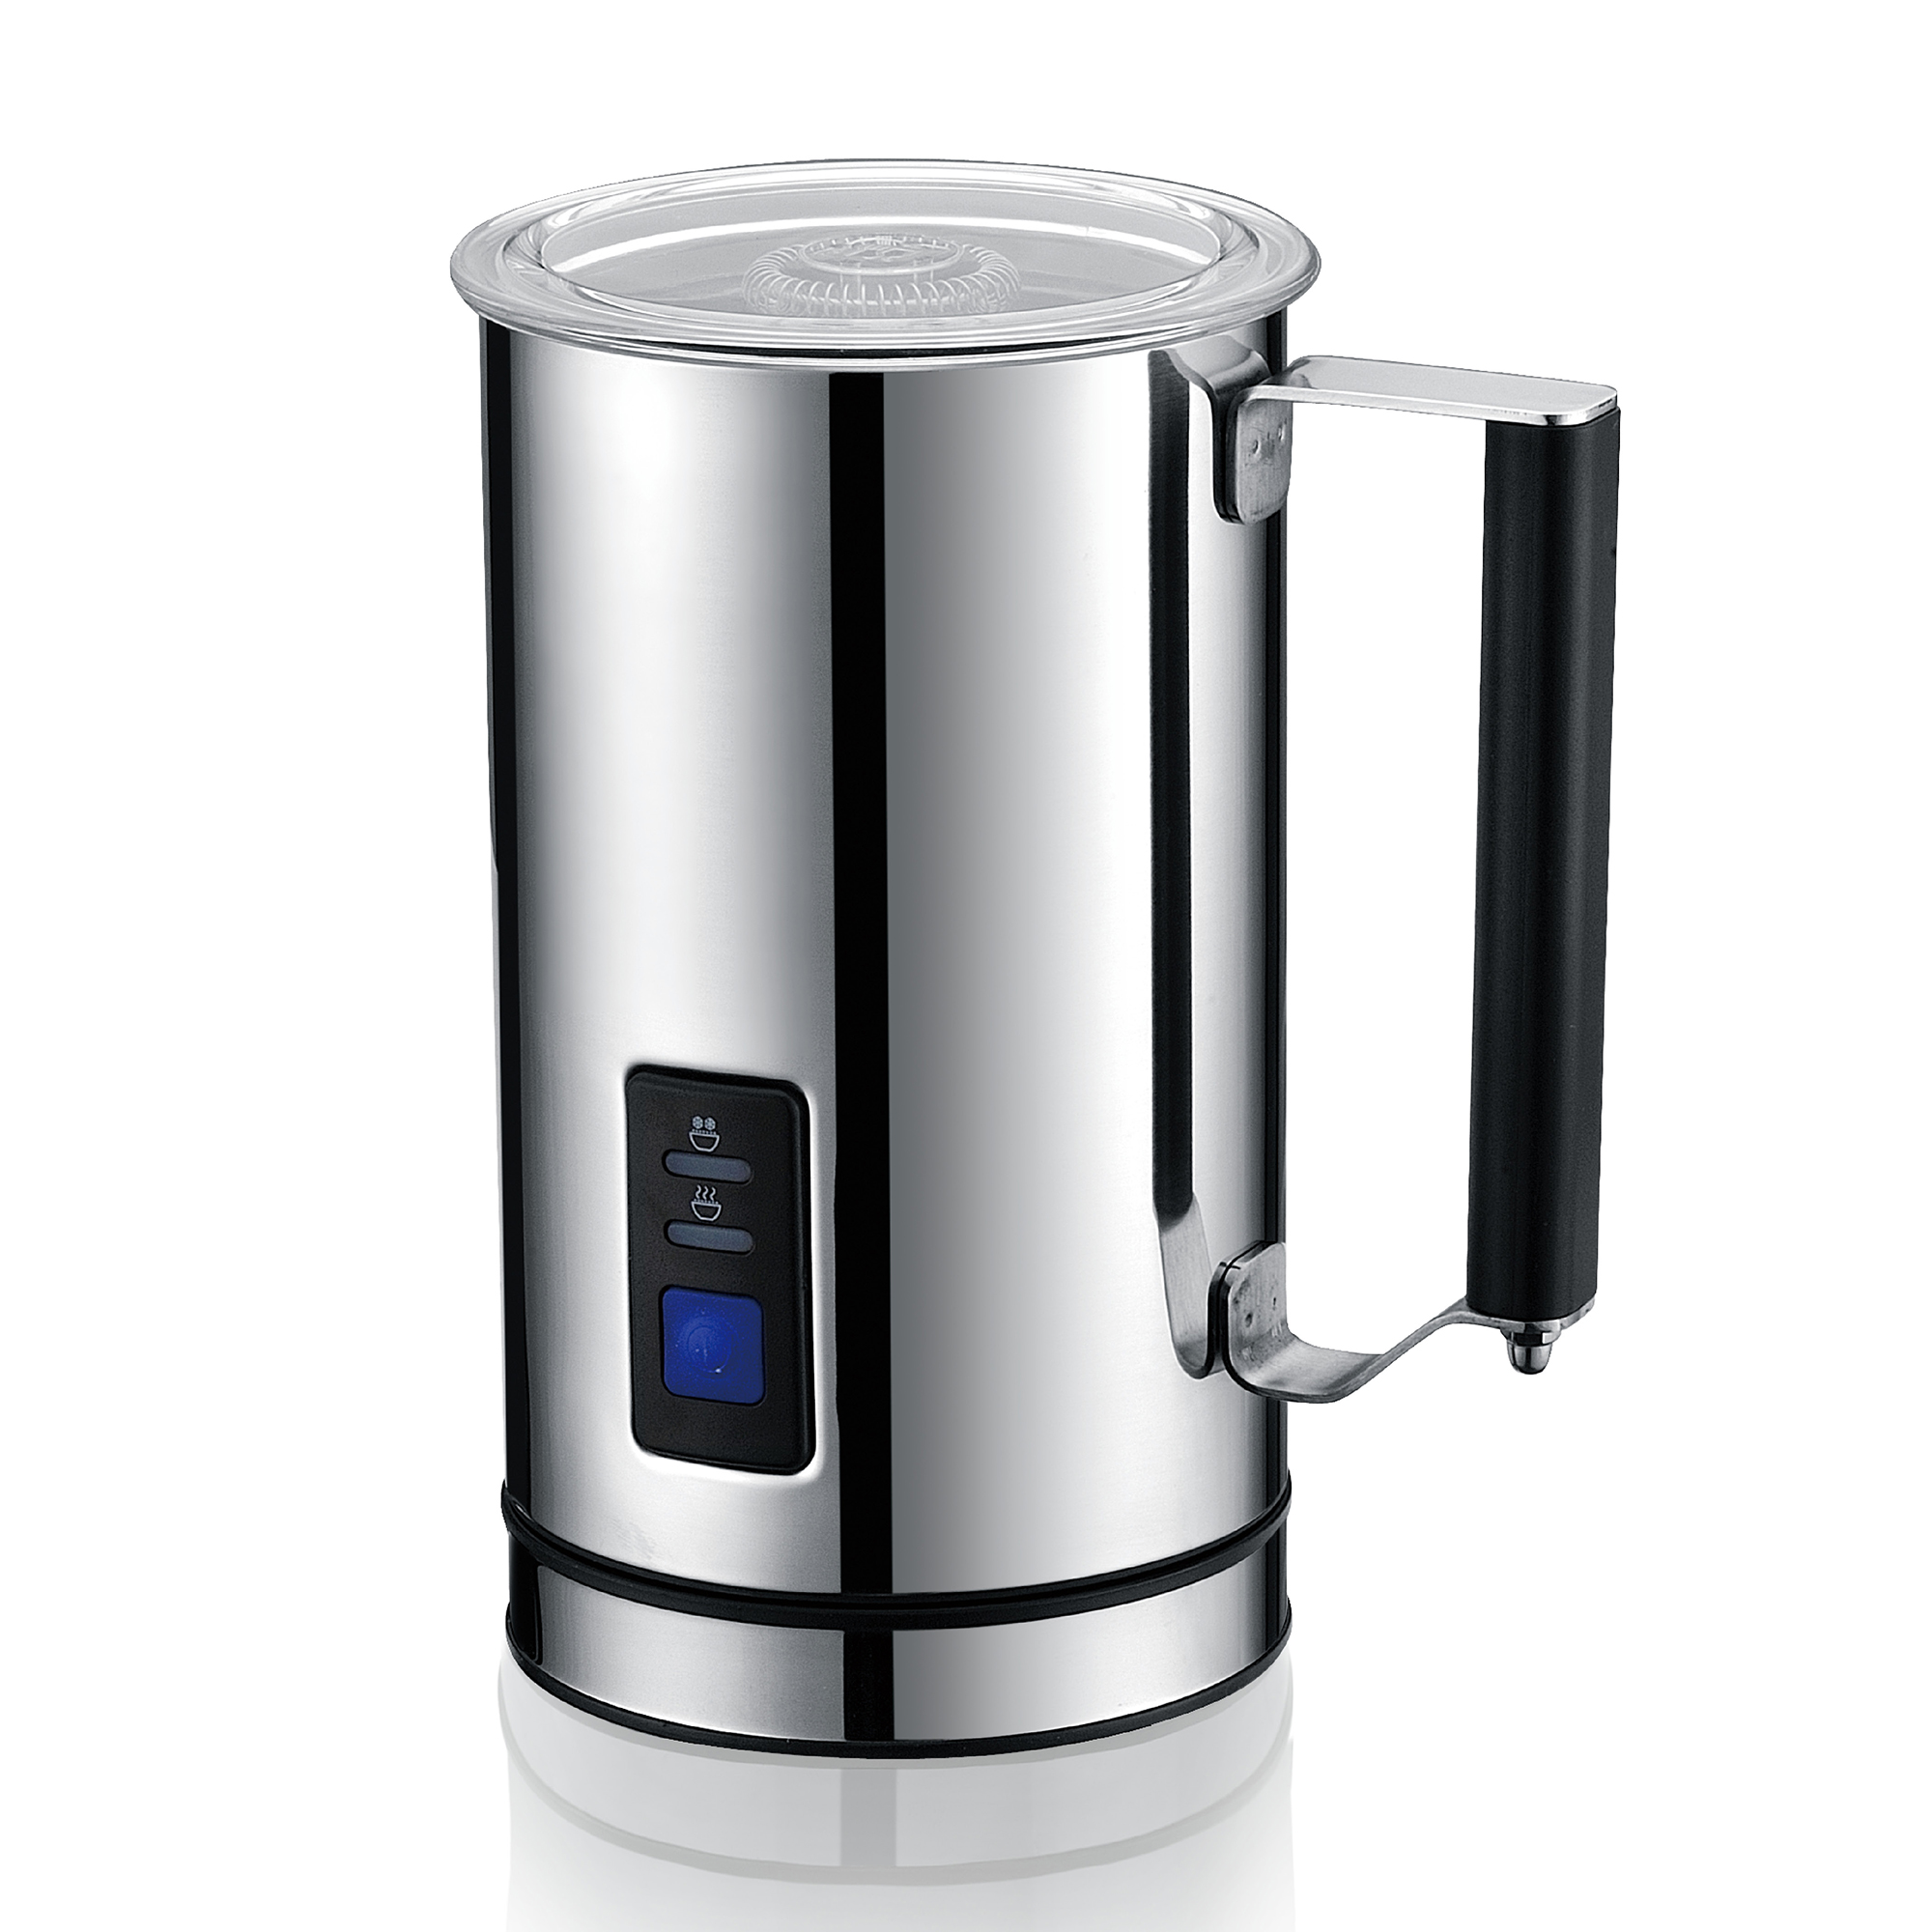 Deluxe Automatic Milk Frother Kuissential